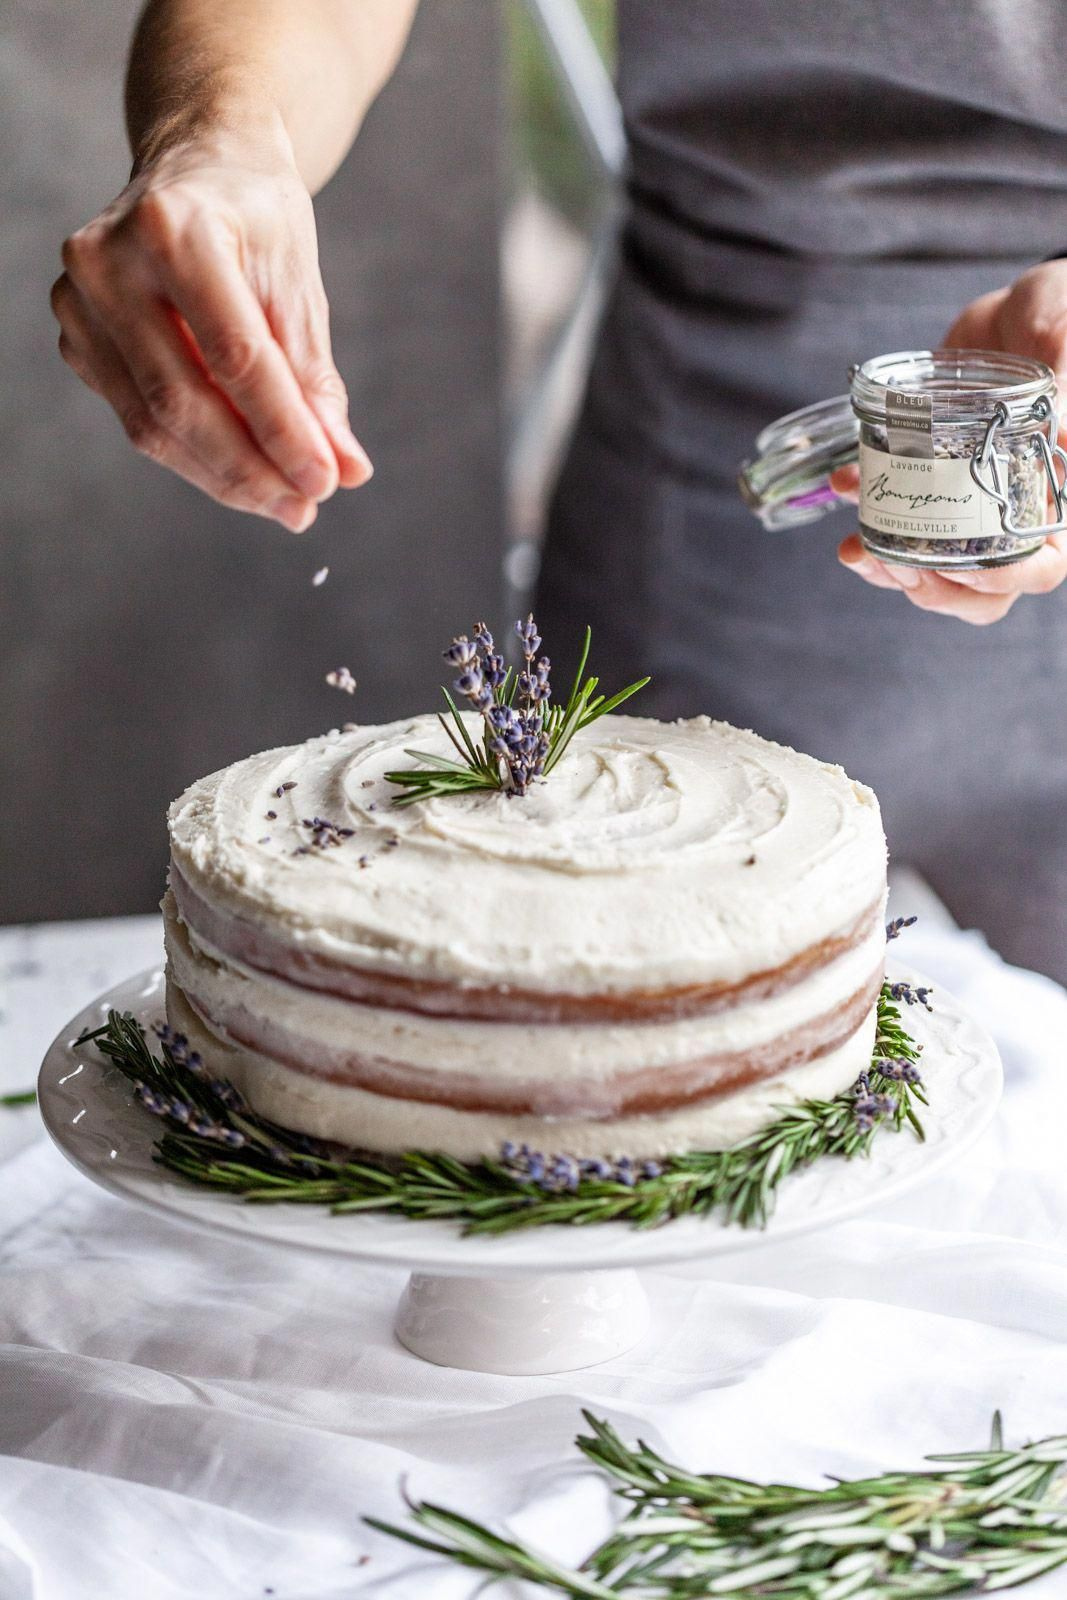 Rosemary Lavender Cake With A Lavender Buttercream •Olive & Mango